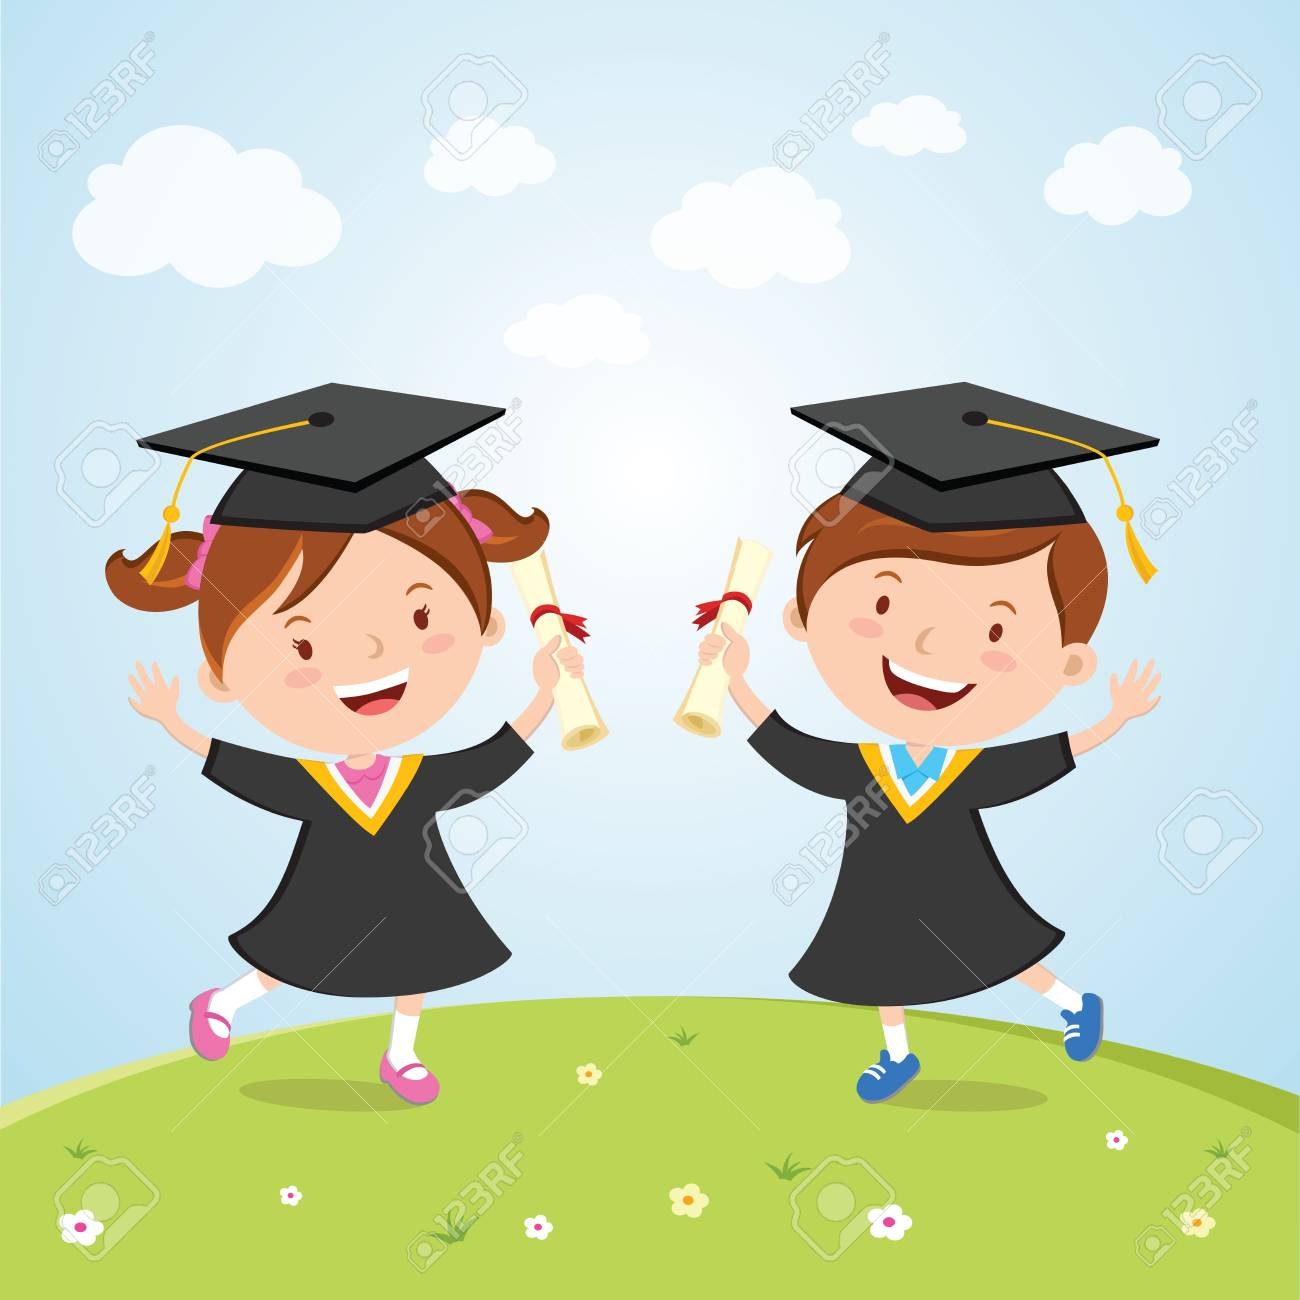 happy graduated kids. little children jumping for joy to celebrate